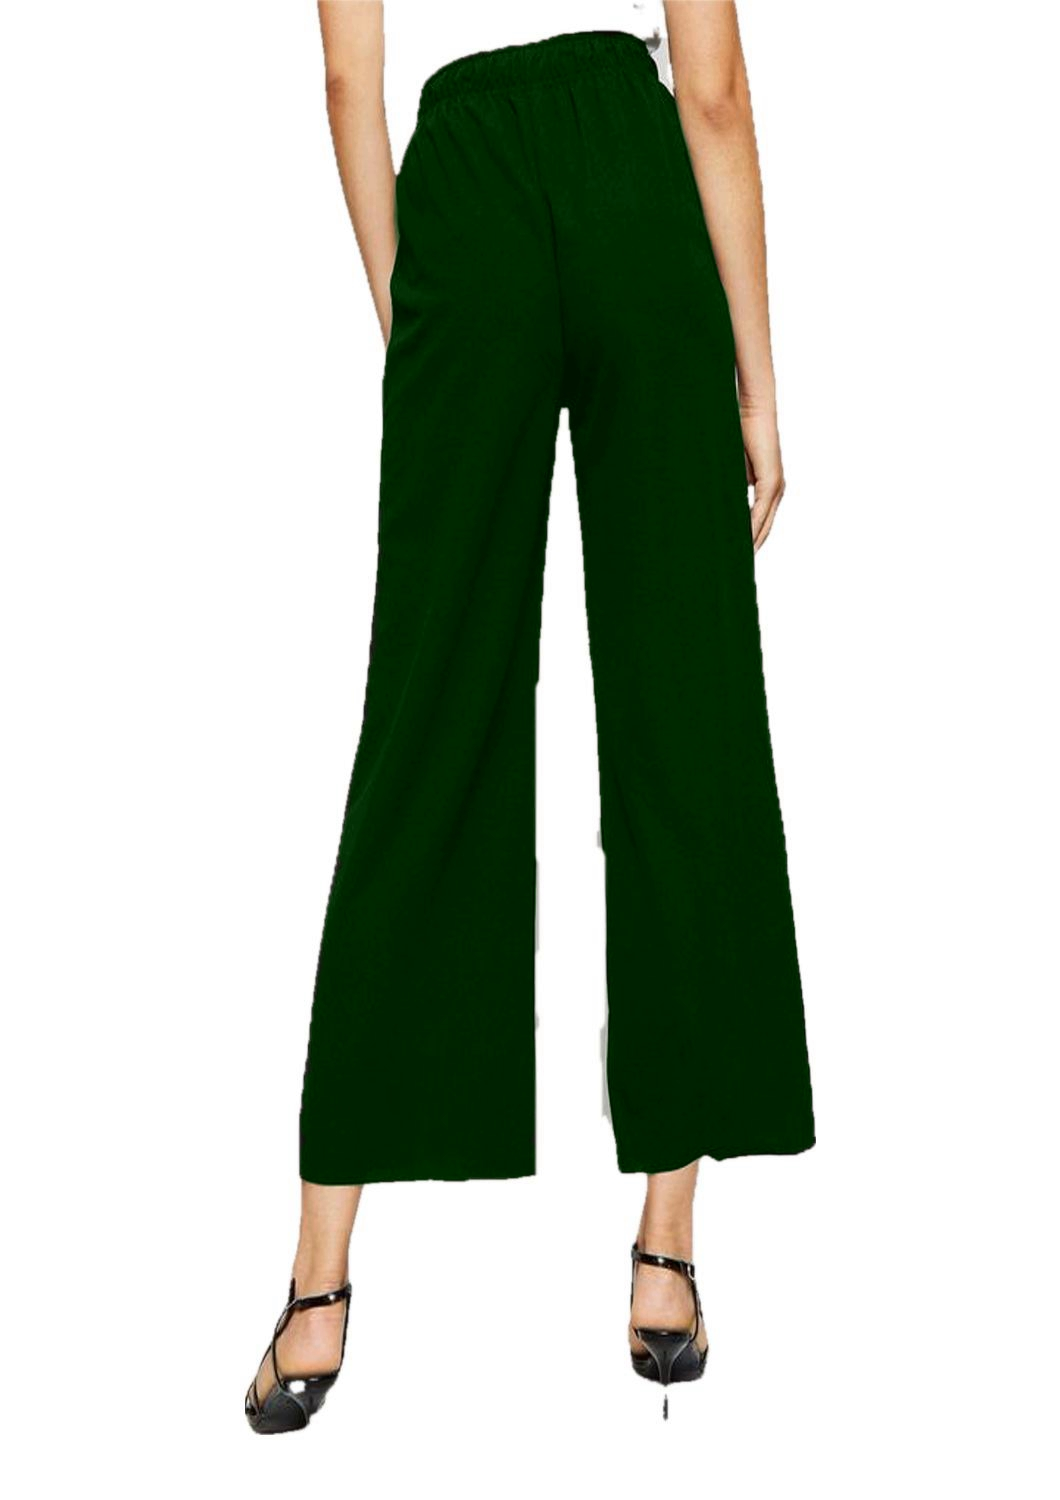 Relaxed Fit Culottes Trousers in Bottle Green